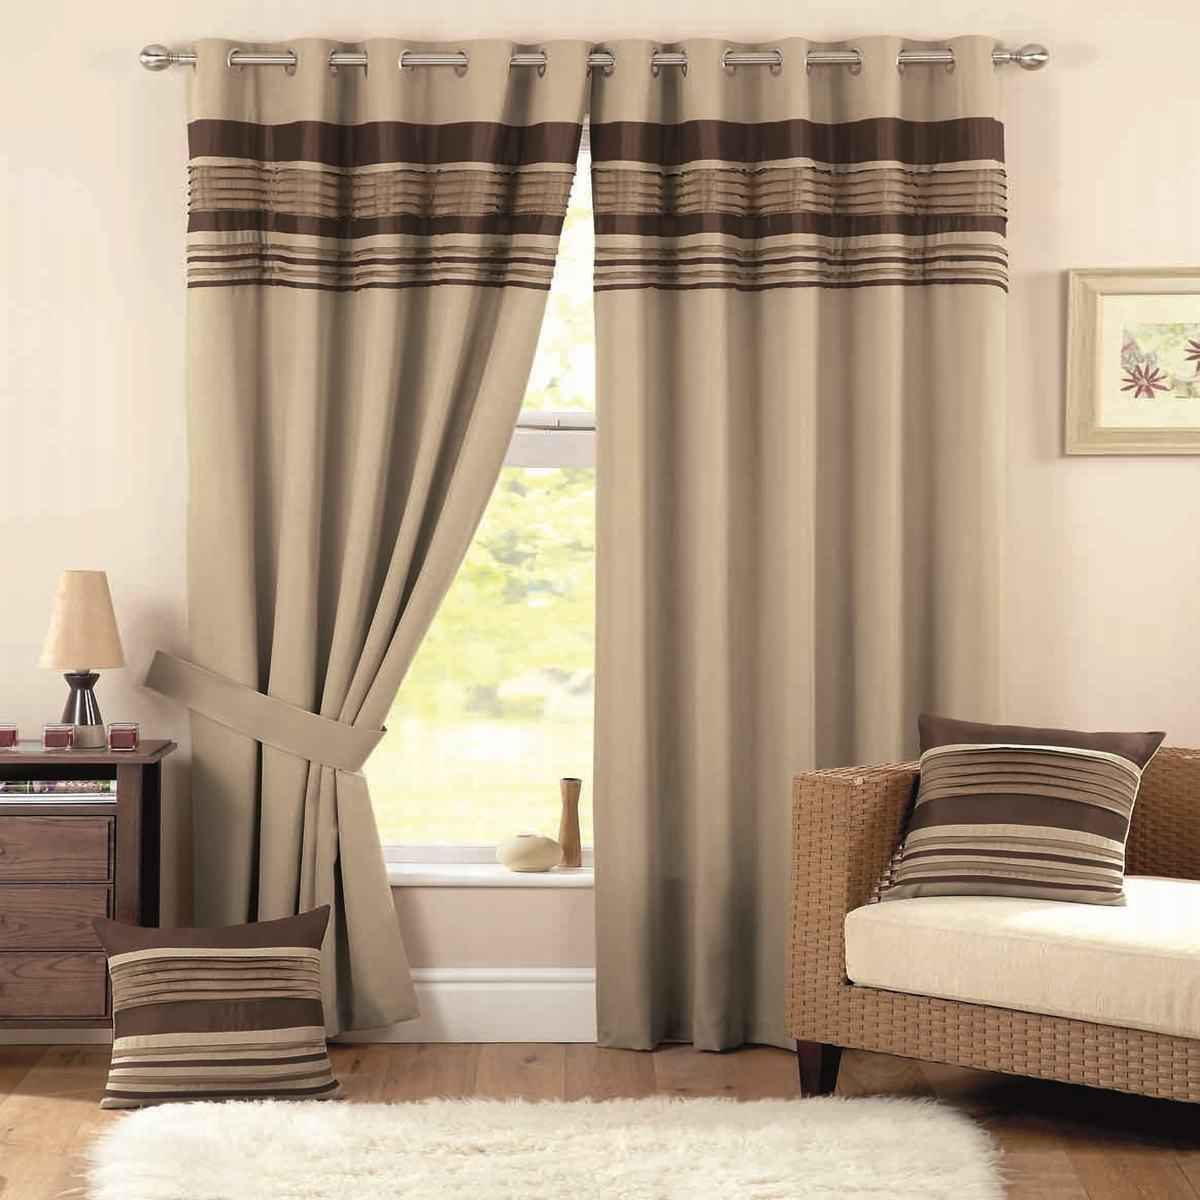 Dark Red Velvet Curtains Blinds and Drapes